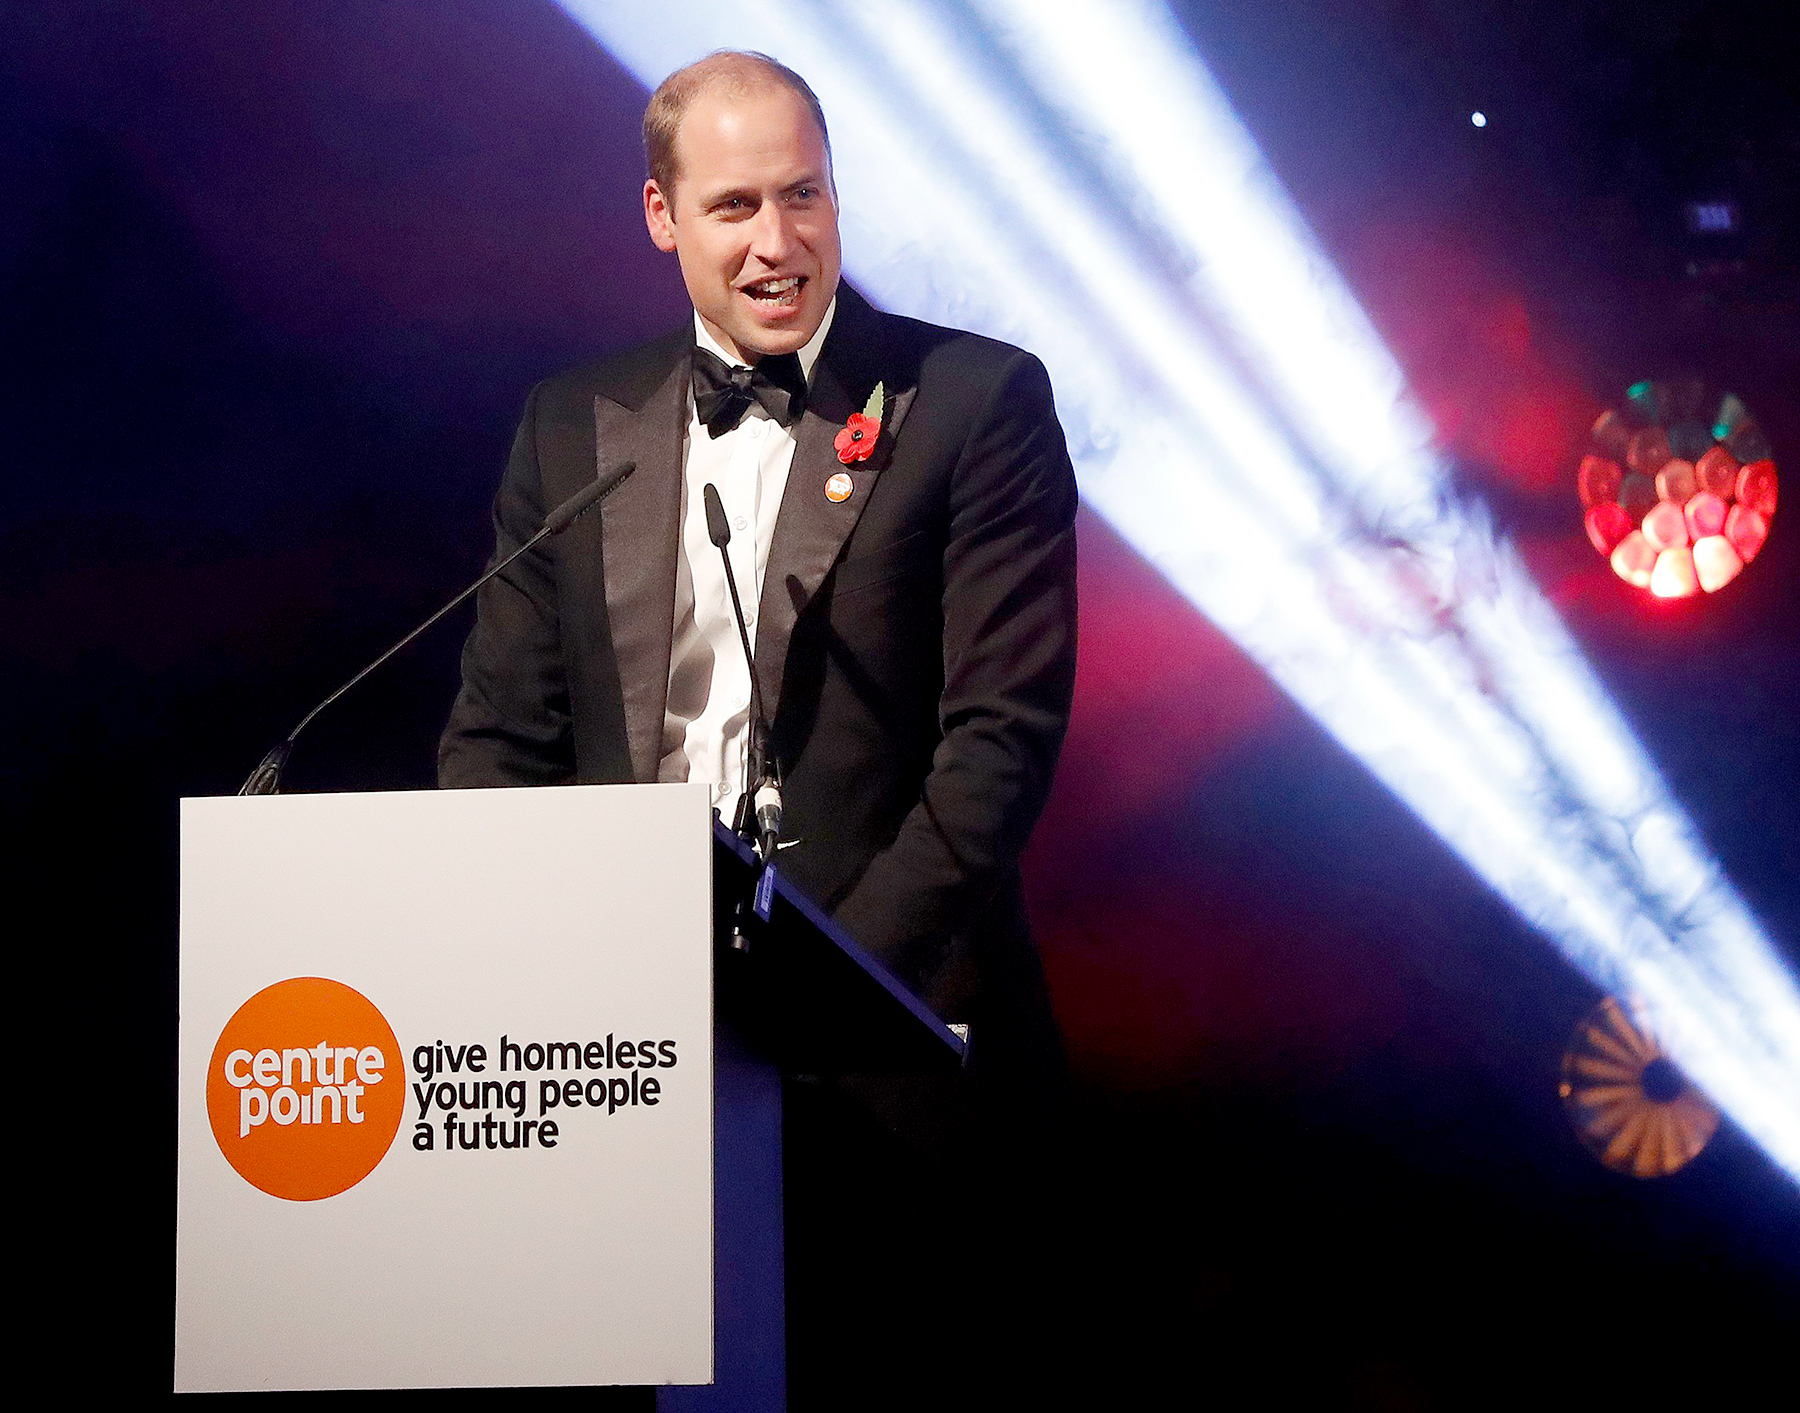 Britain's Prince William, Duke of Cambridge, gives a speech at Centrepoint at the Palace, a fundraising event in the grounds of Kensington Palace in London on November 10, 2016 in aid of youth homeless charity Centrepoint.